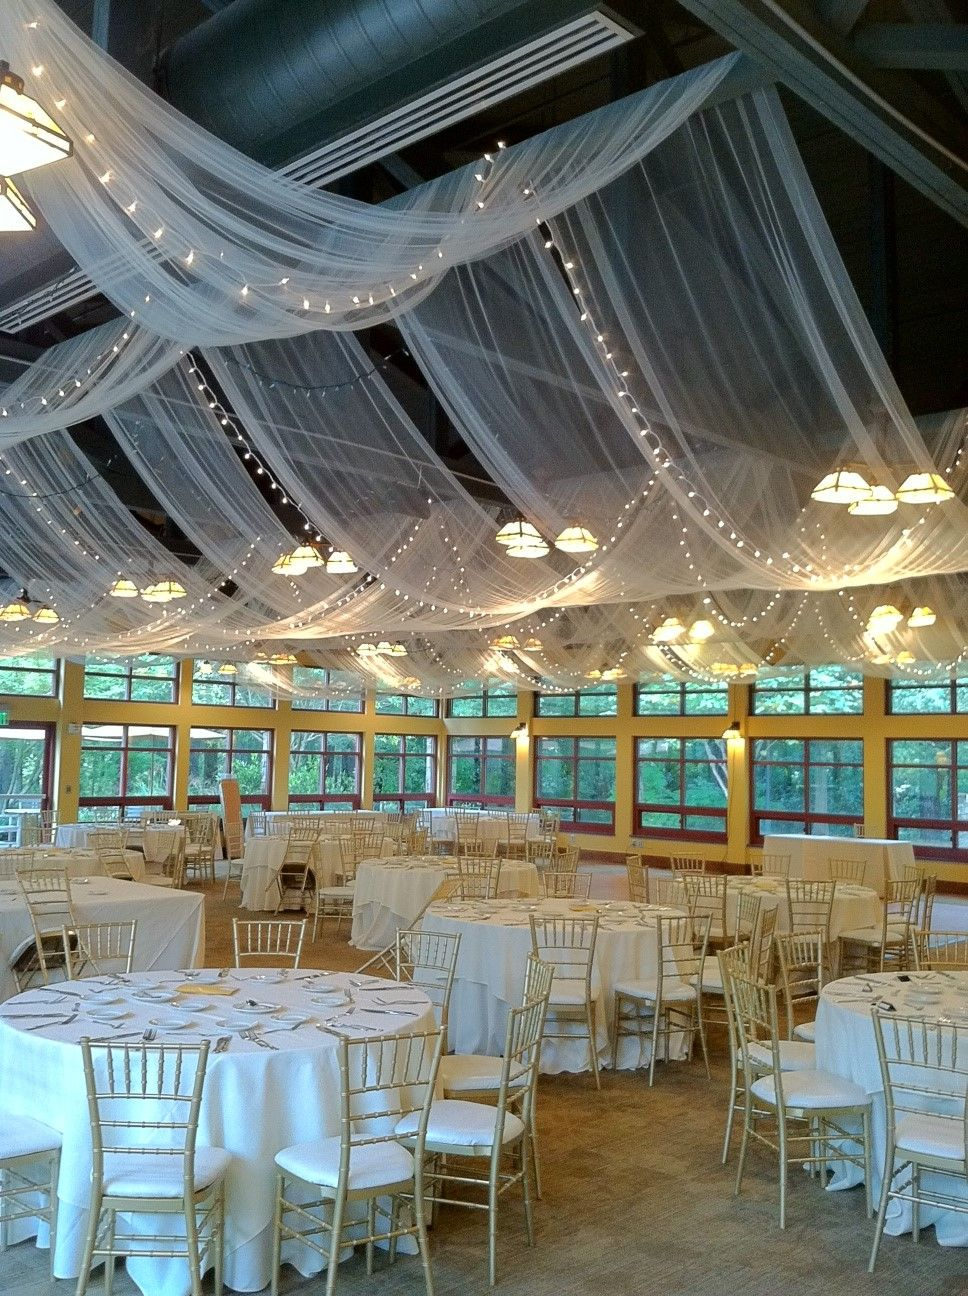 Fabric draping and twinkle lights in the